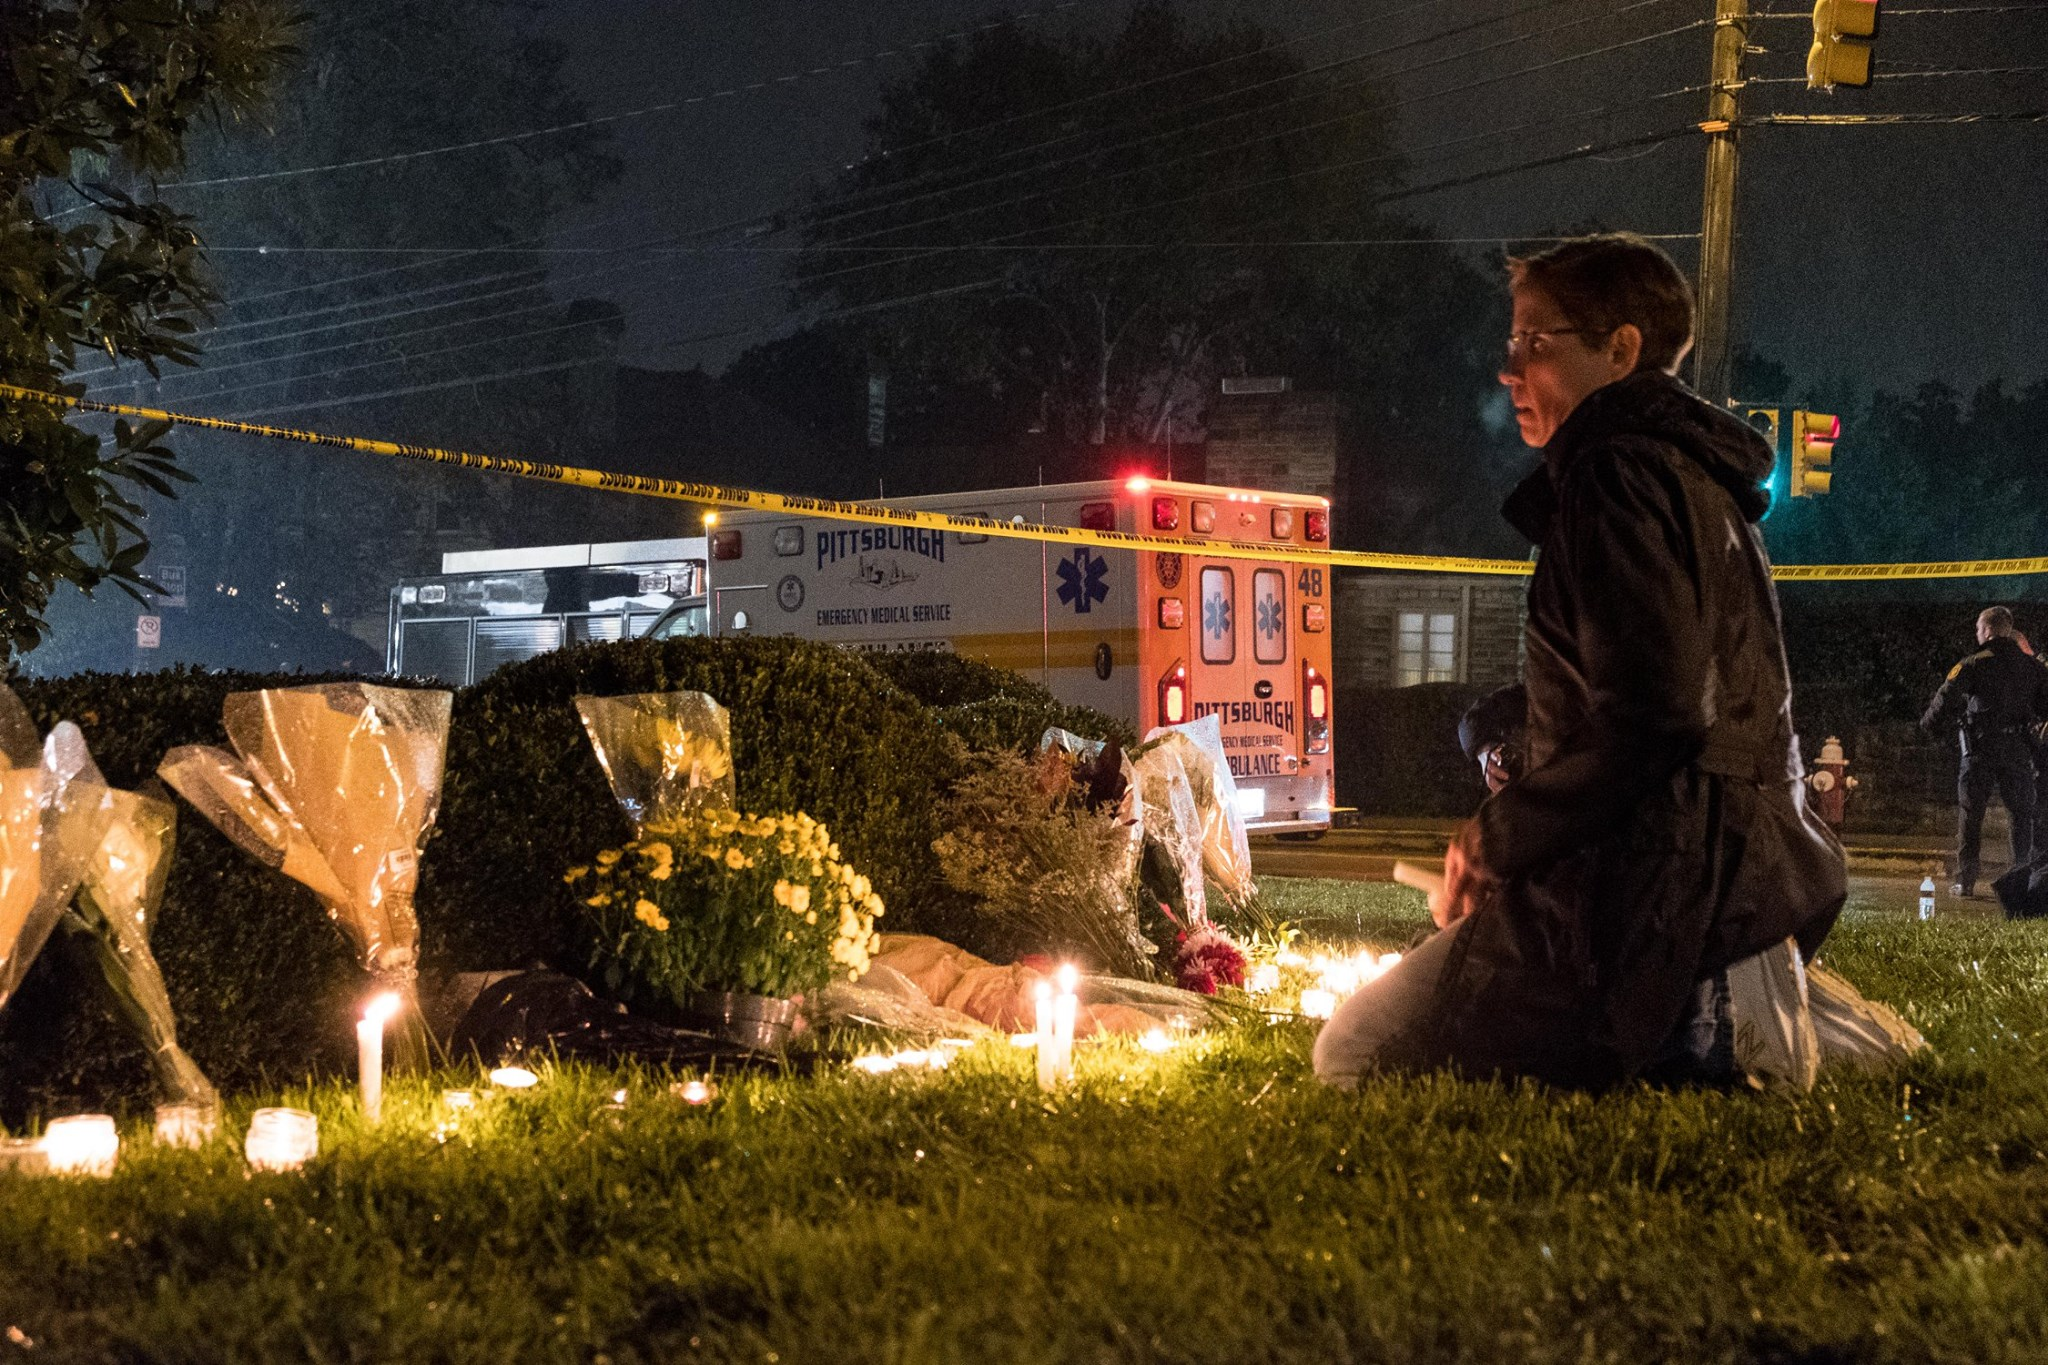 Victoria Wosher, who lives nears the Tree of Life Synagogue, lights candles and mourns at a makeshift shrine on Shady Avenue at 9:45 p.m. Saturday, twelve hours after the deadly attack on the Treet of Life synagogue in Squirrel Hill. anti-semitic gunman Robert Bowers, armed with an assault rifle and 3 handguns, entered the Tree of Life synagogue in Squirrel Hill. Wosher said she was deeply shaken and saddened by the shooting and loss of life.